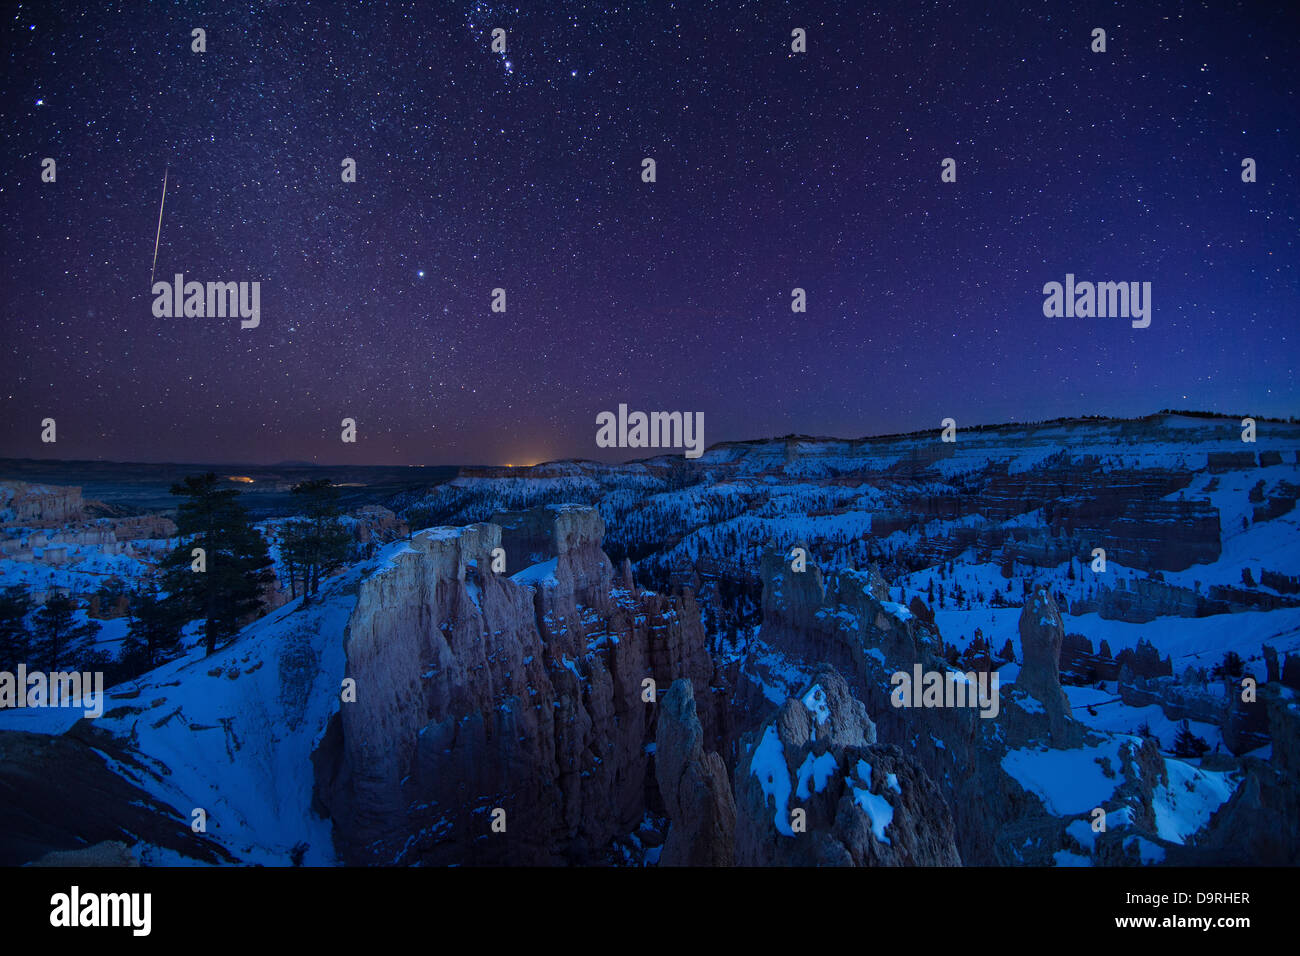 a shooting star in the night sky over the Amphitheatre, Bryce Canyon, Utah, USA Stock Photo